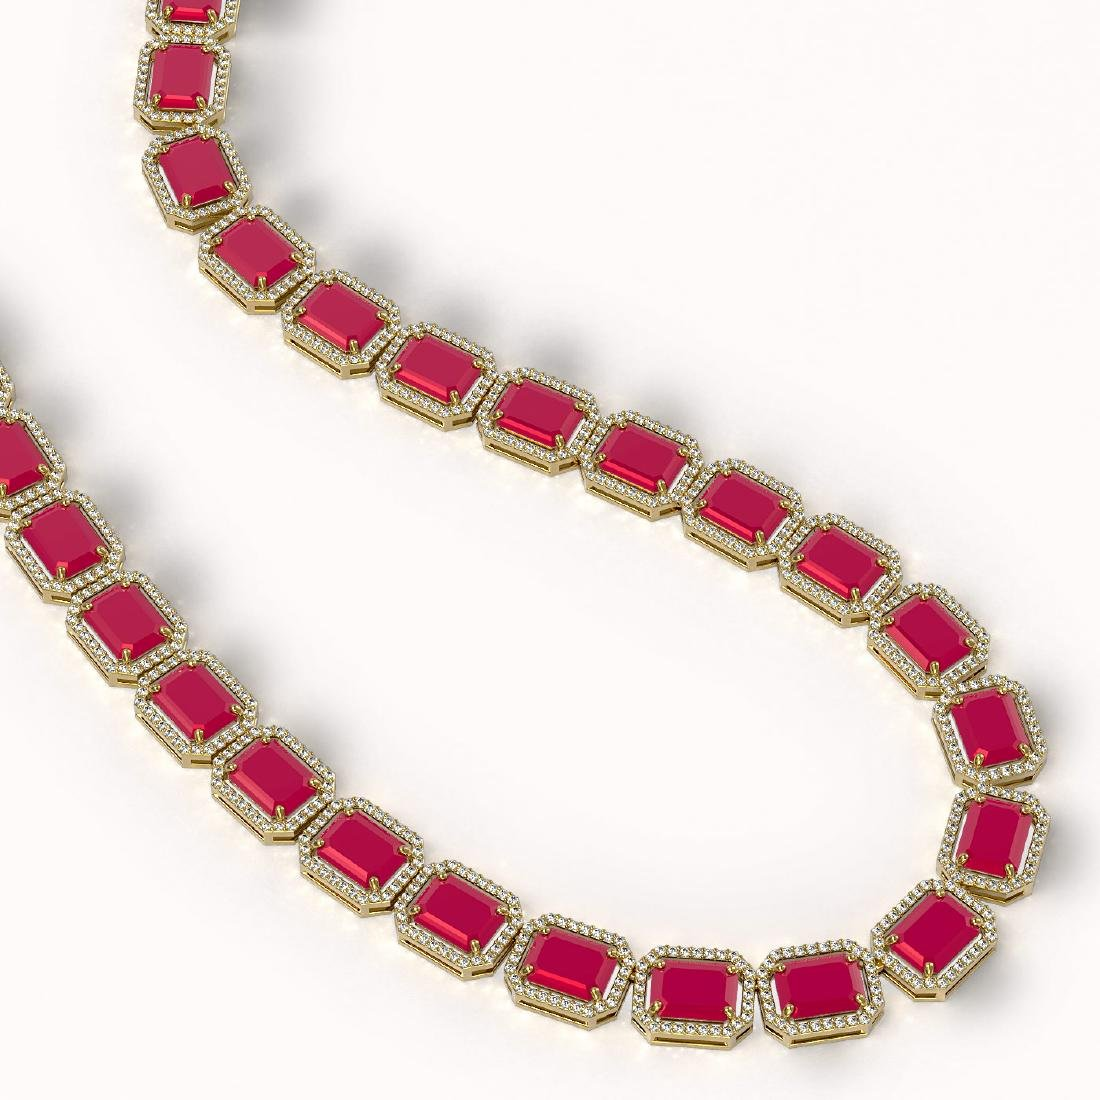 84.94 CTW Ruby & Diamond Halo Necklace 10K Yellow Gold - 2